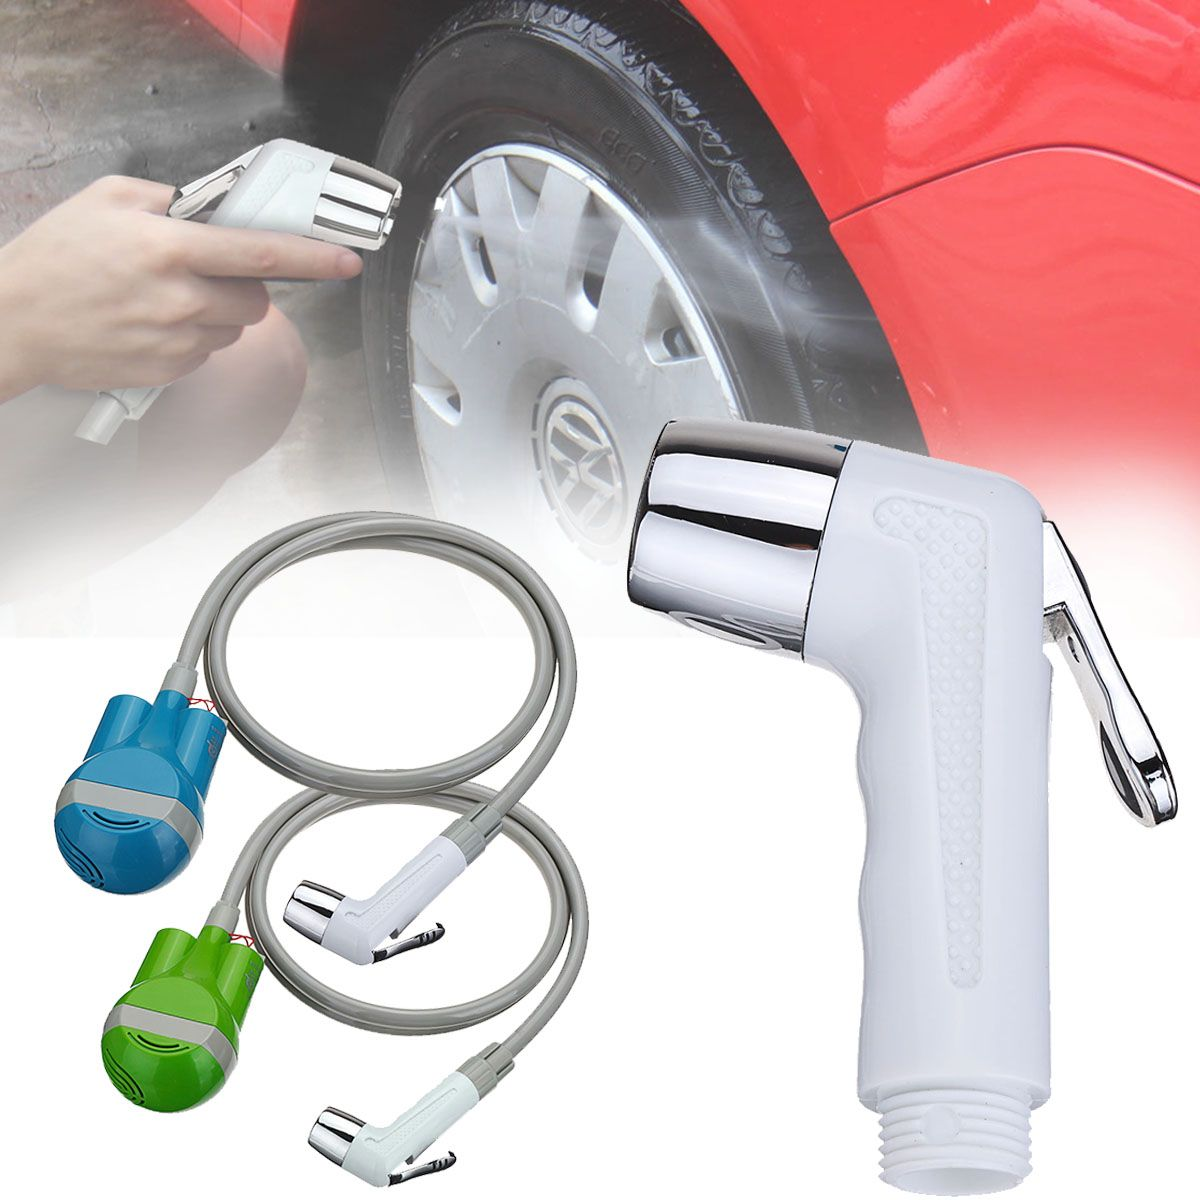 Outdoor Shower camping <font><b>Washer</b></font> Portable Car Baby USB Shower Water Pump Tank Rechargeable Nozzle Camper Travel Caravan Van <font><b>Washer</b></font>